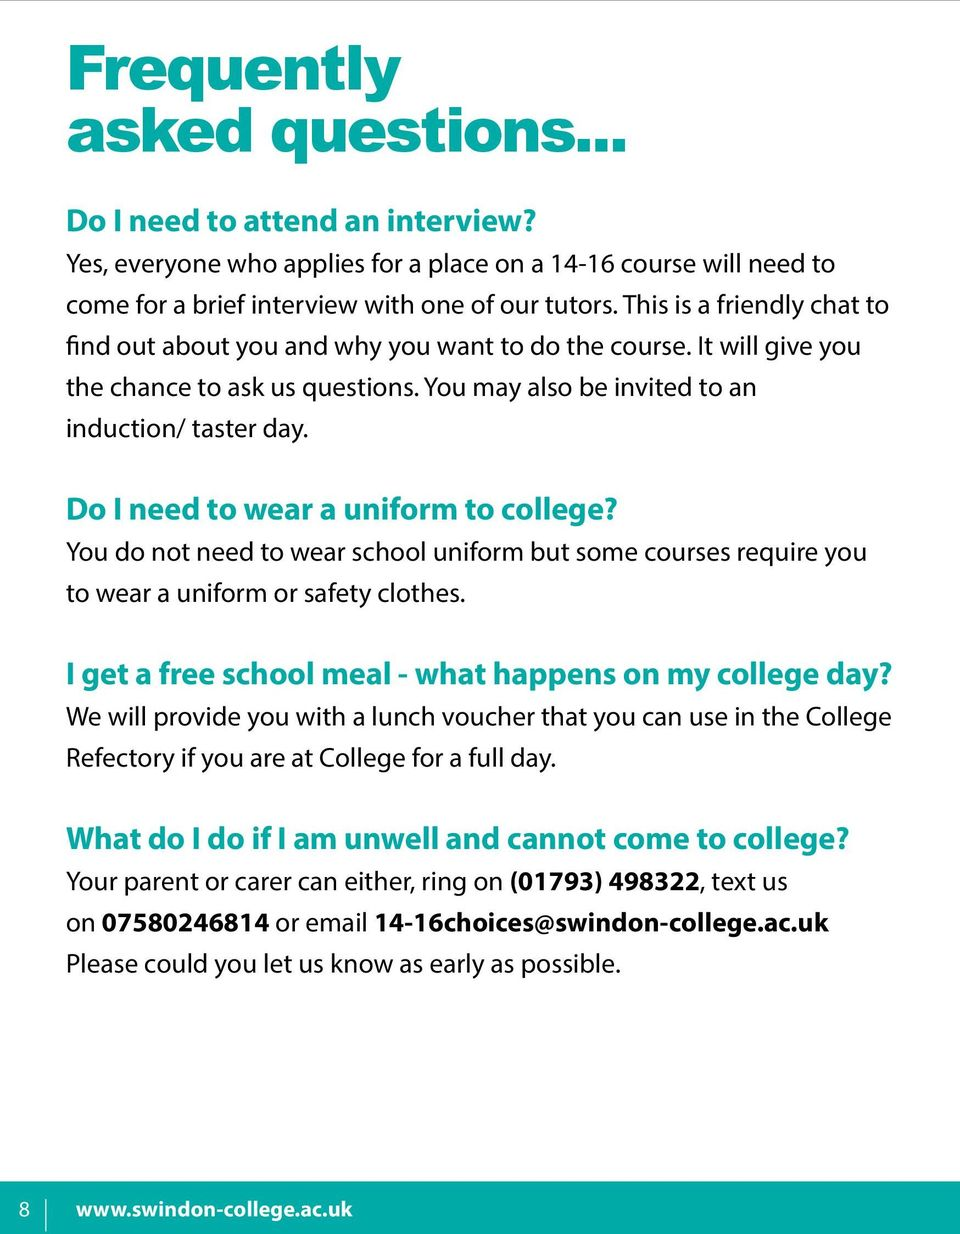 Do I need to wear a uniform to college? You do not need to wear school uniform but some courses require you to wear a uniform or safety clothes.